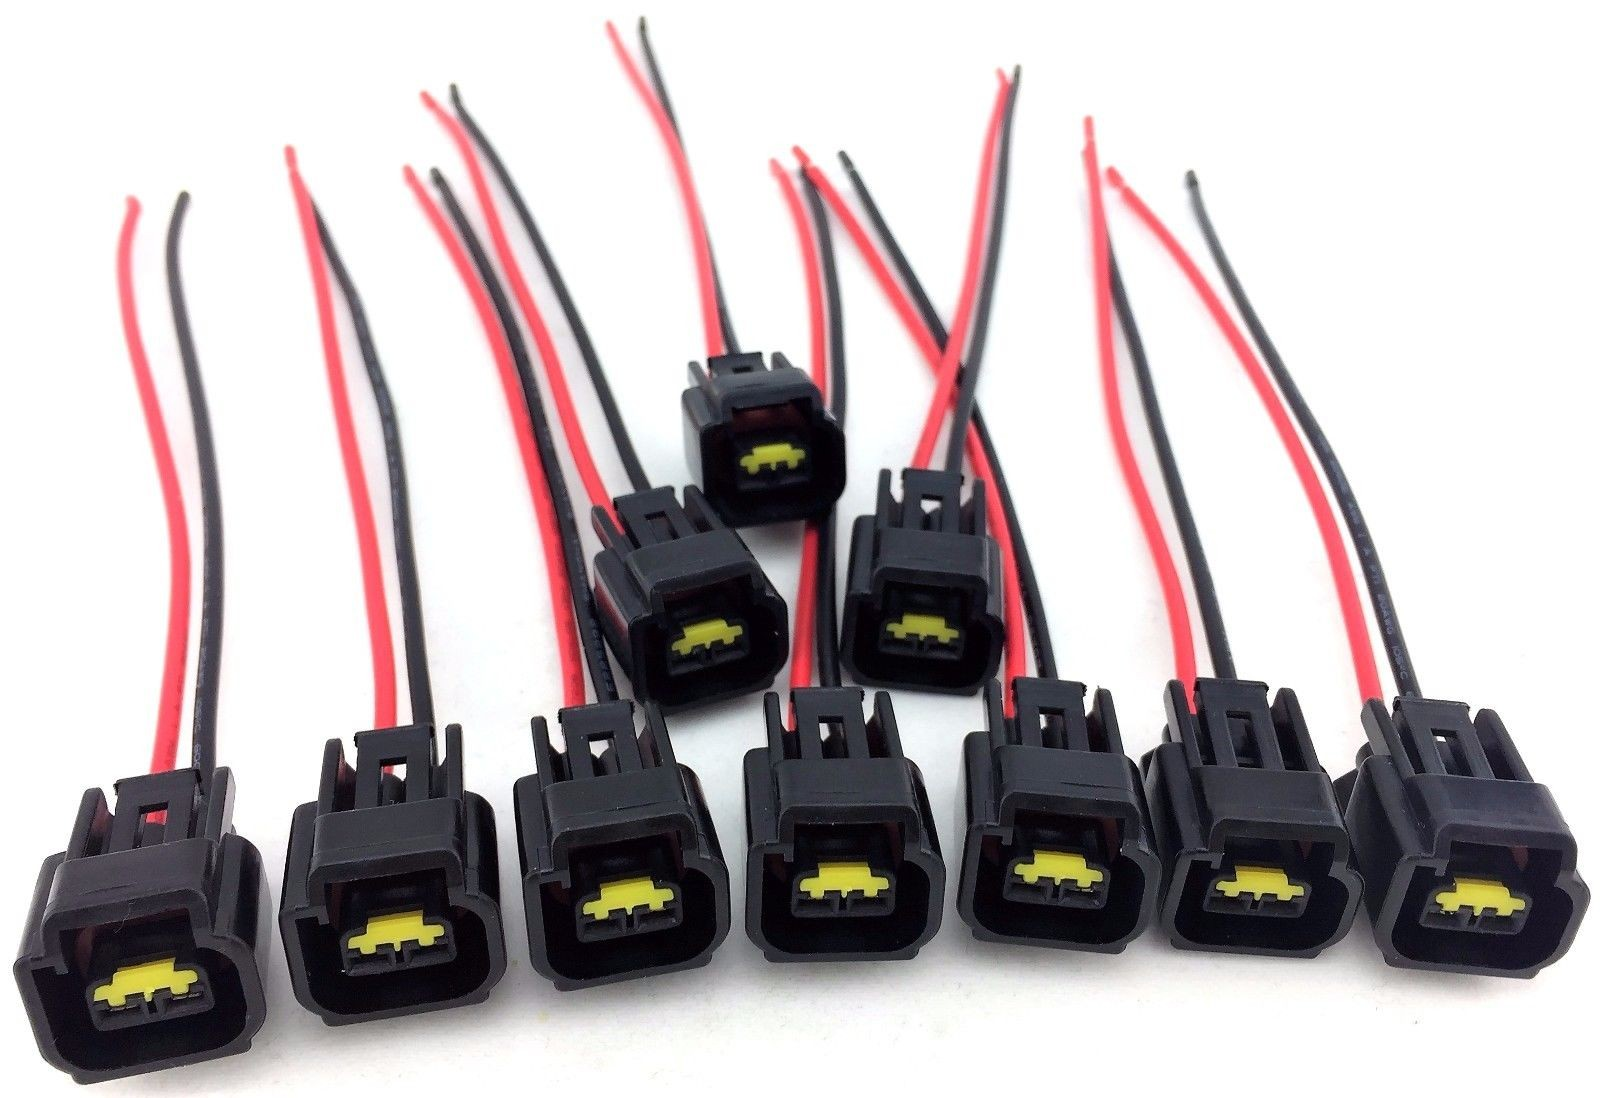 s l1600_1_42 ignition coil wire harness repair 6 8 6 8l f350 f 350 f450 f 450 e ignition coil wiring harness at bayanpartner.co